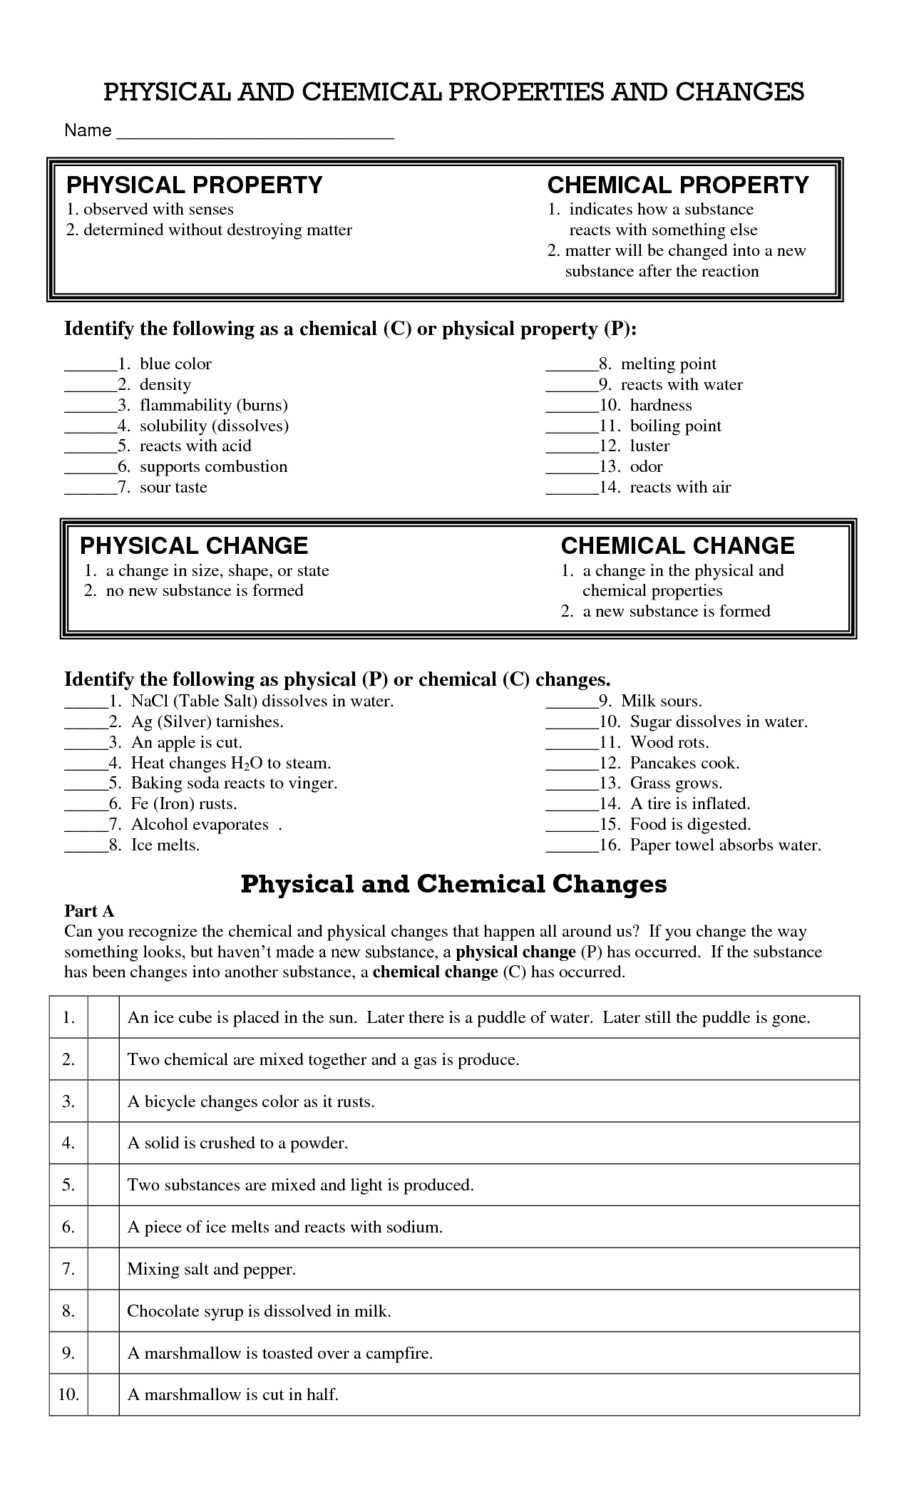 Proficiency Worksheet Physical And Chemical Changes Chemical And – Worksheet Physical and Chemical Changes